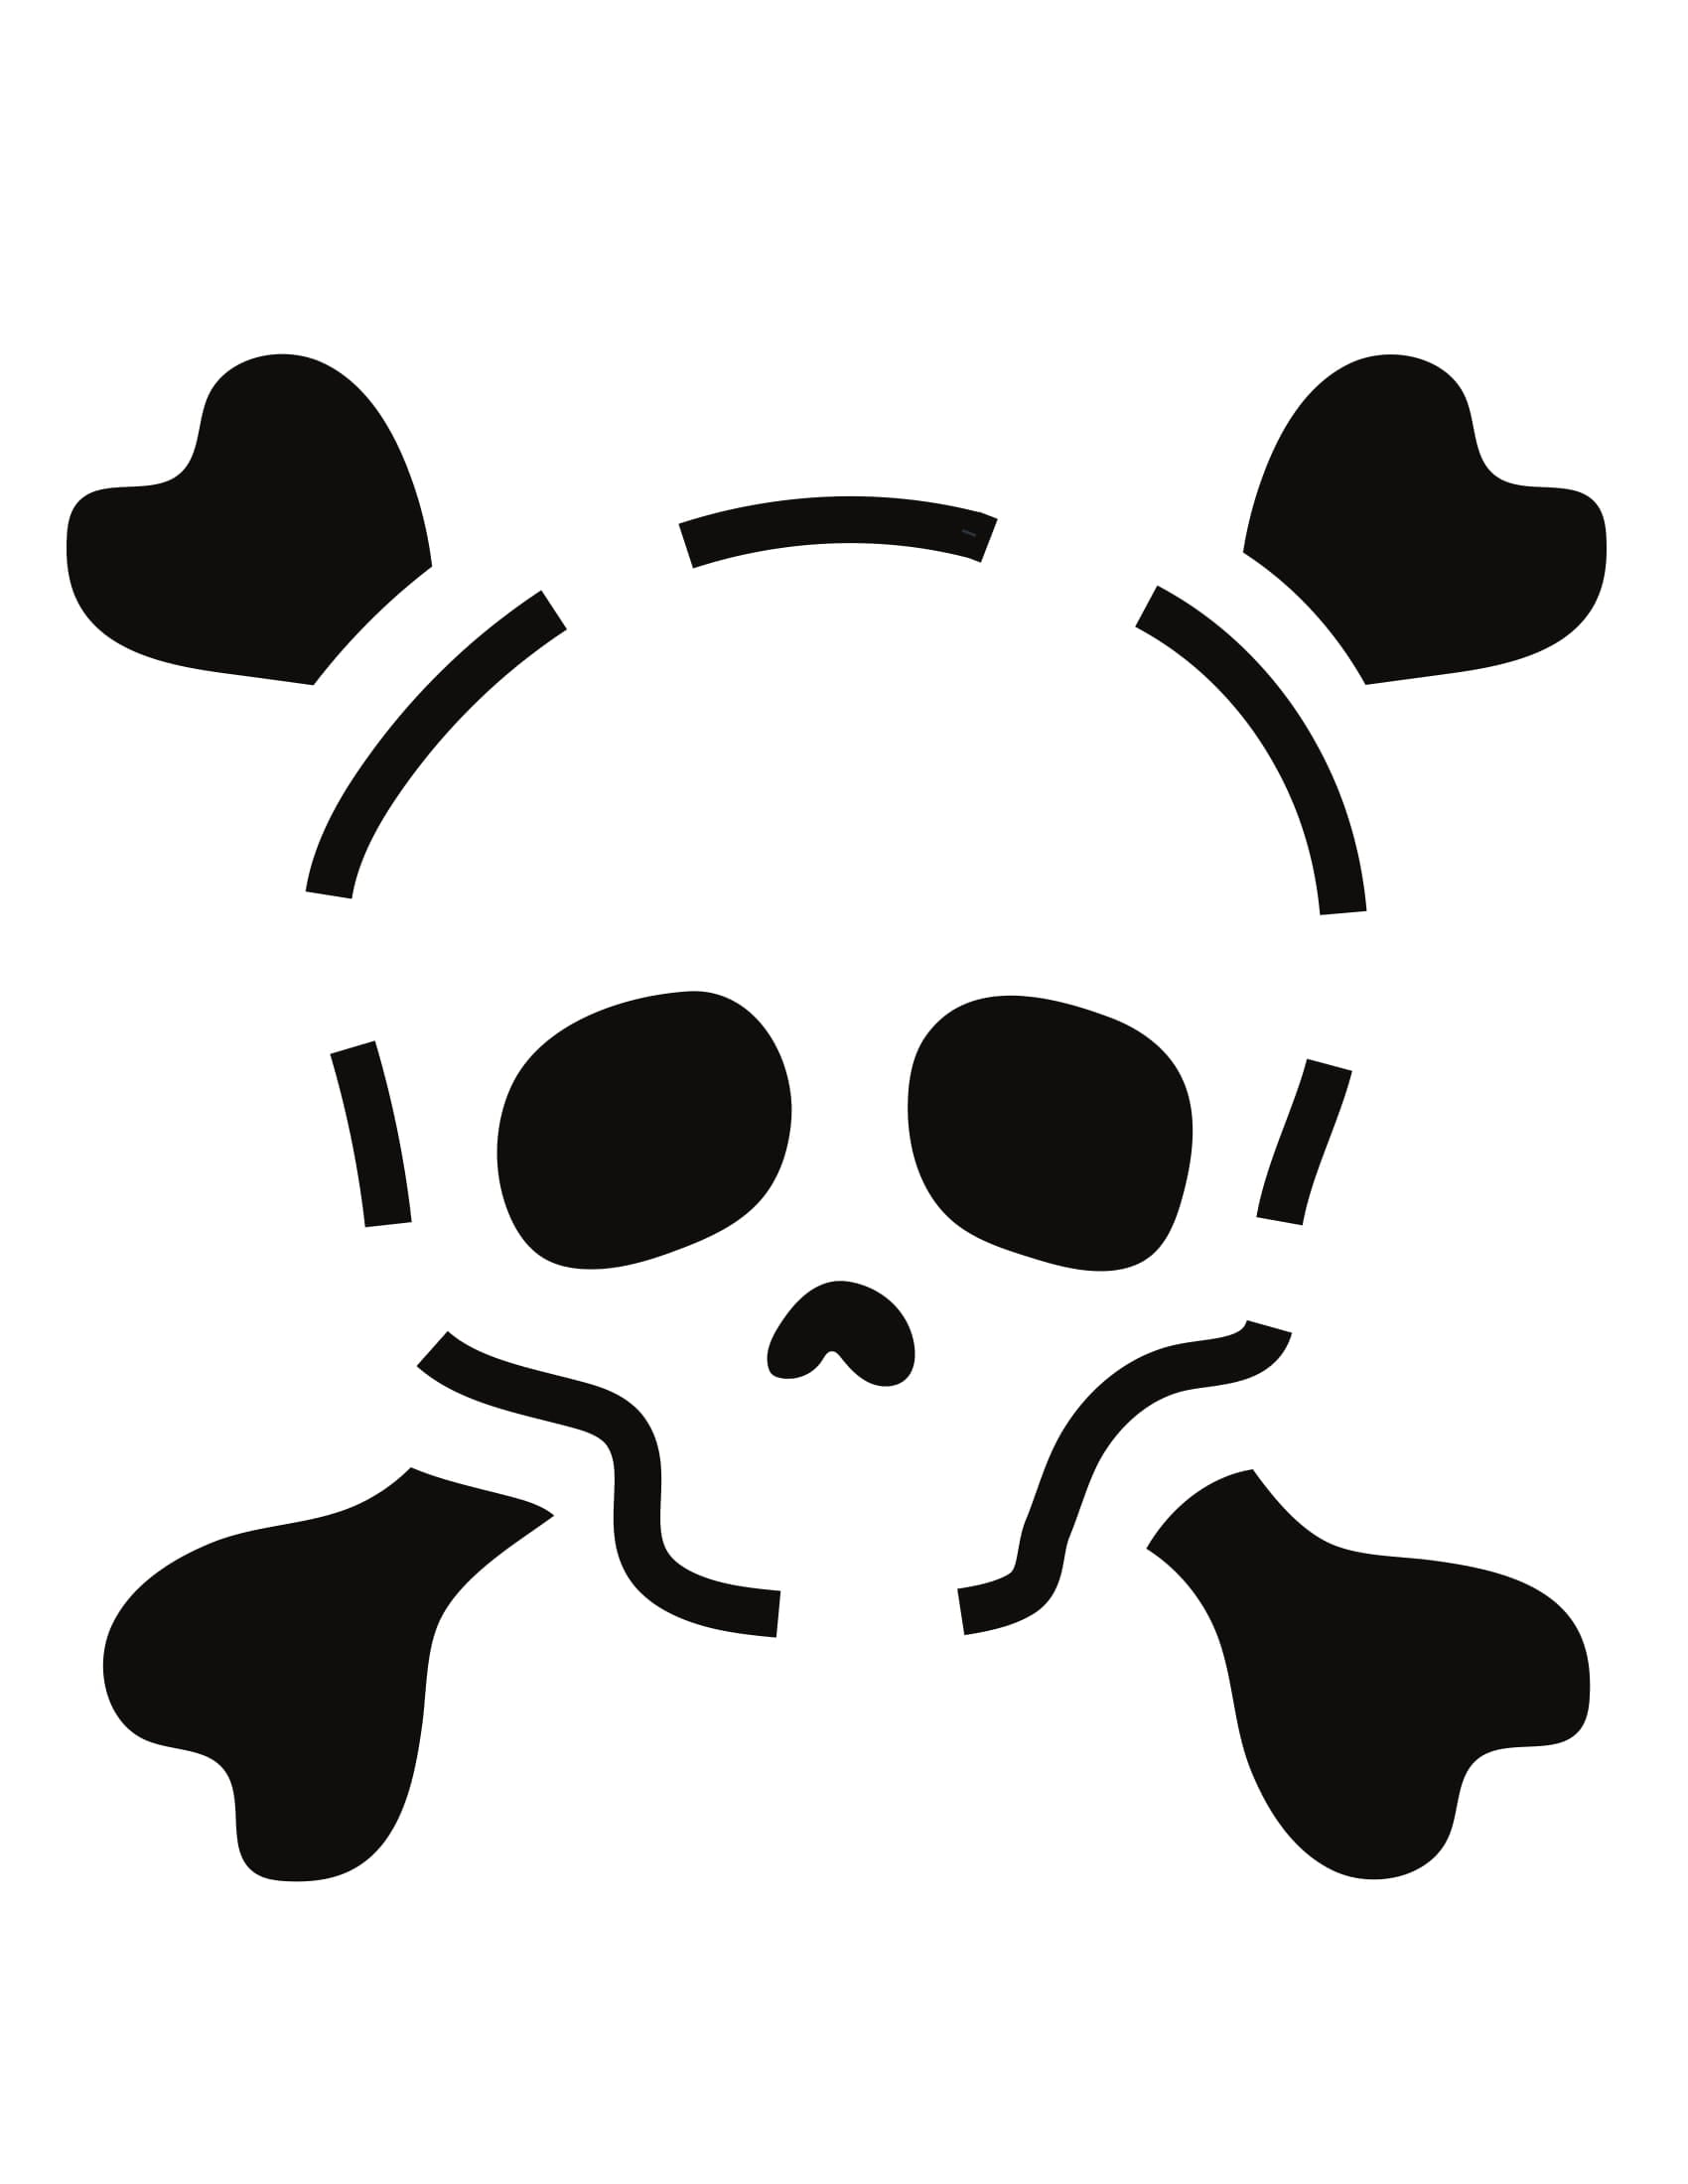 Skull 20 Pumpkin Carving Templates That Ll Take Your Jack O Lantern Game To The Next Level Popsugar Smart Living Photo 21